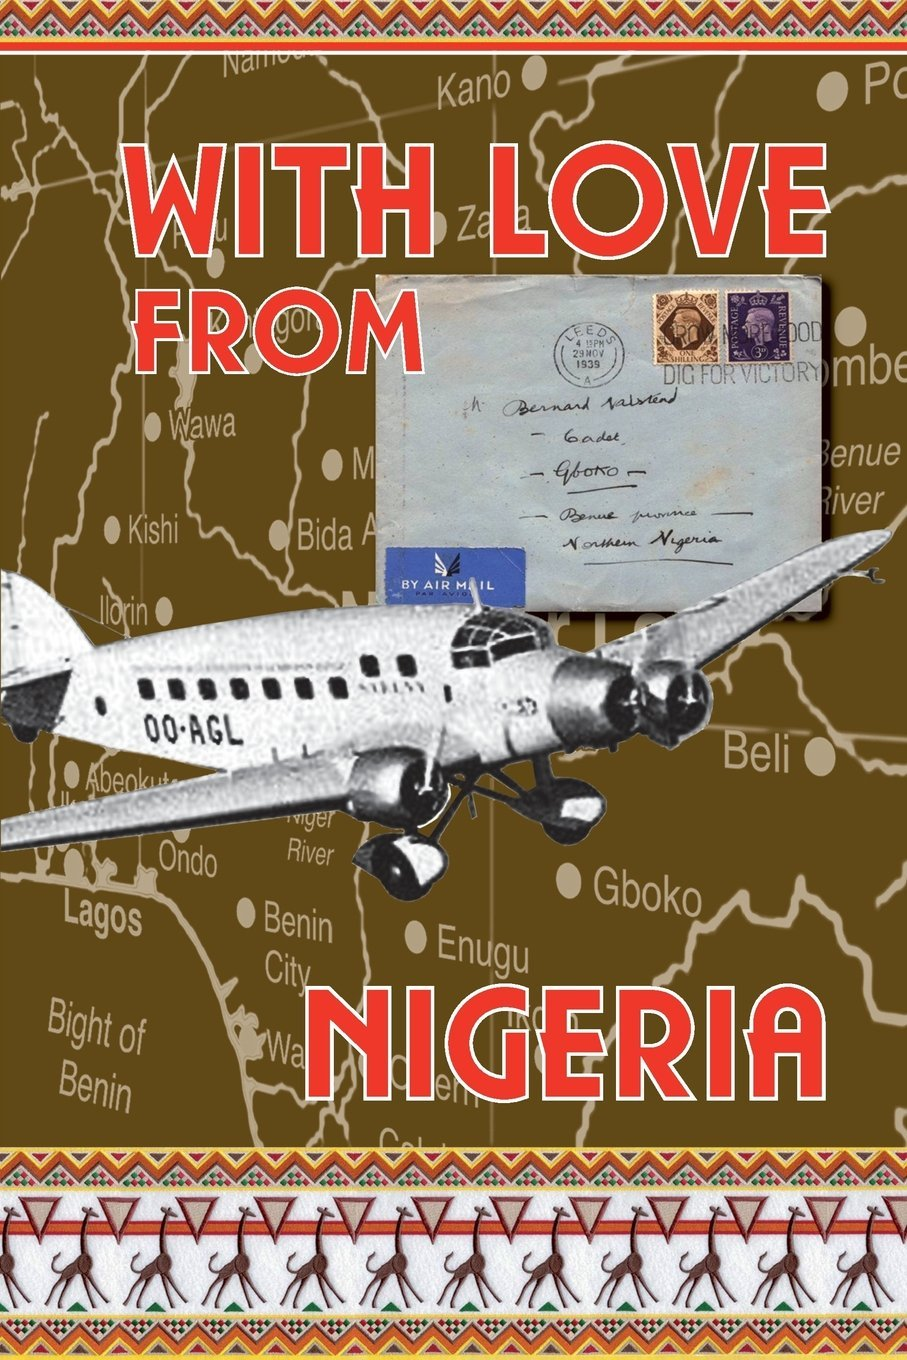 With Love from Nigeria Bernard Halstead